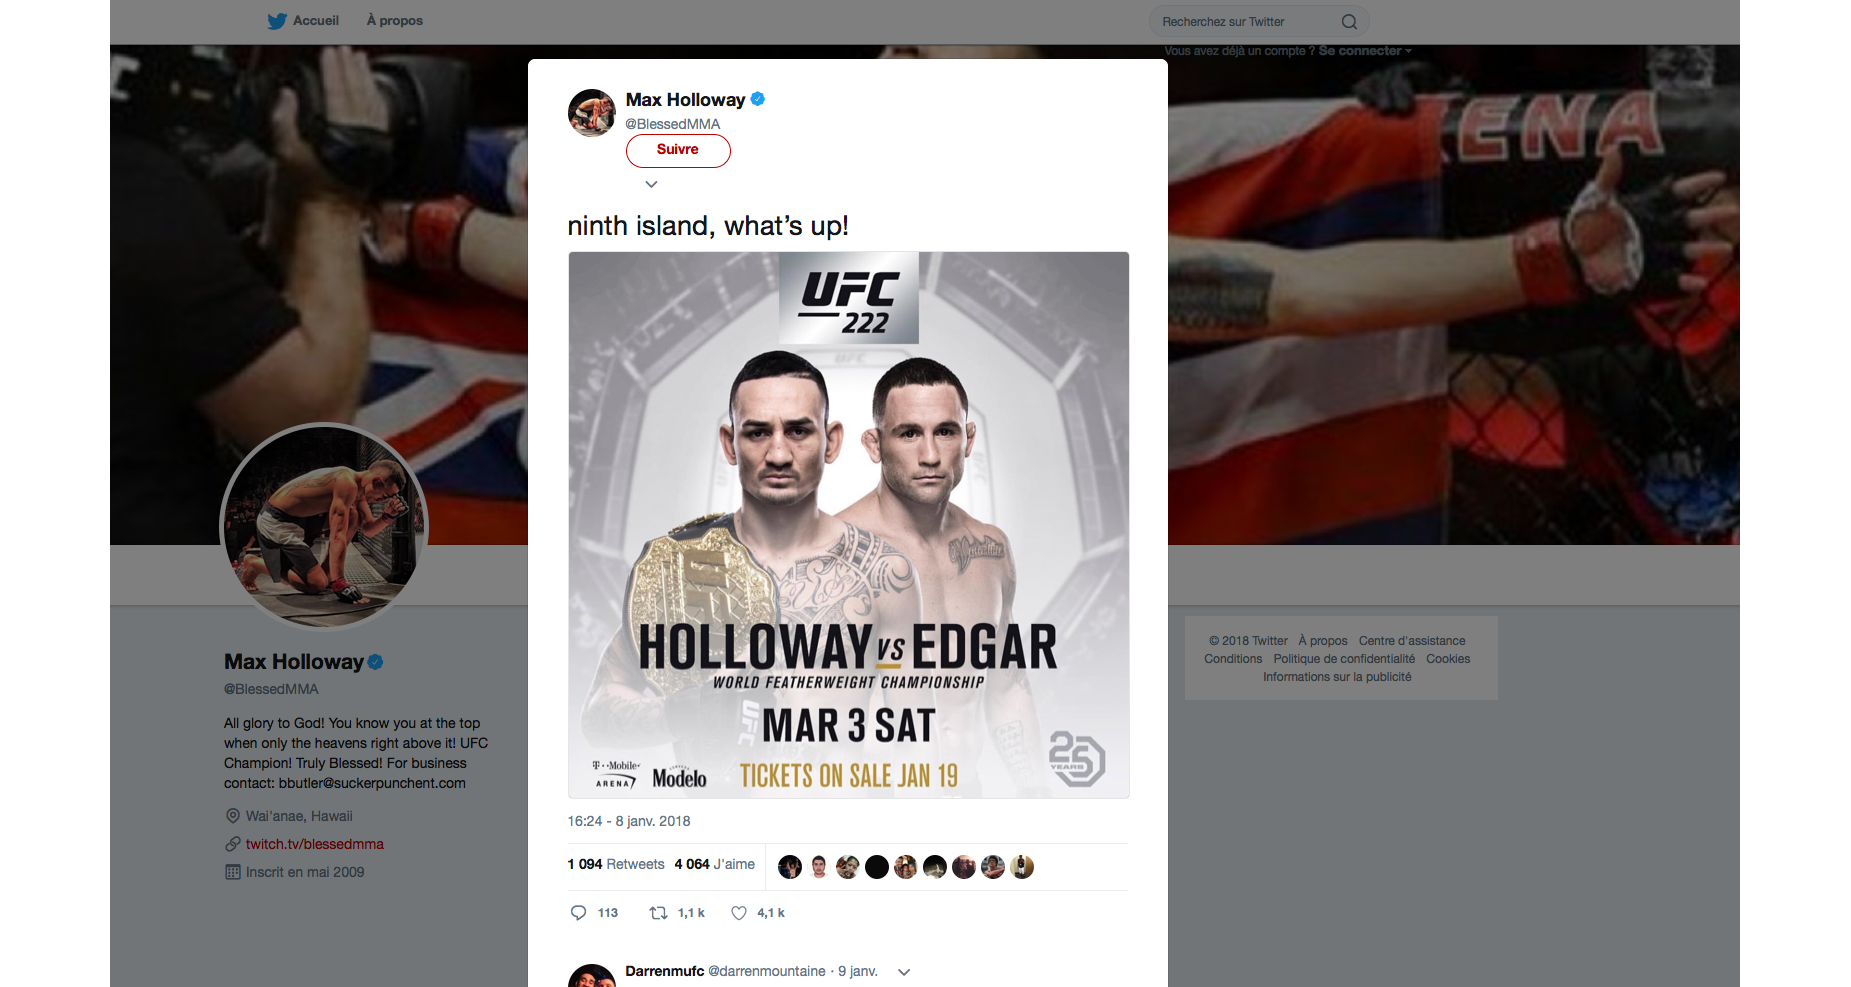 Image 4 holloway vs edgar